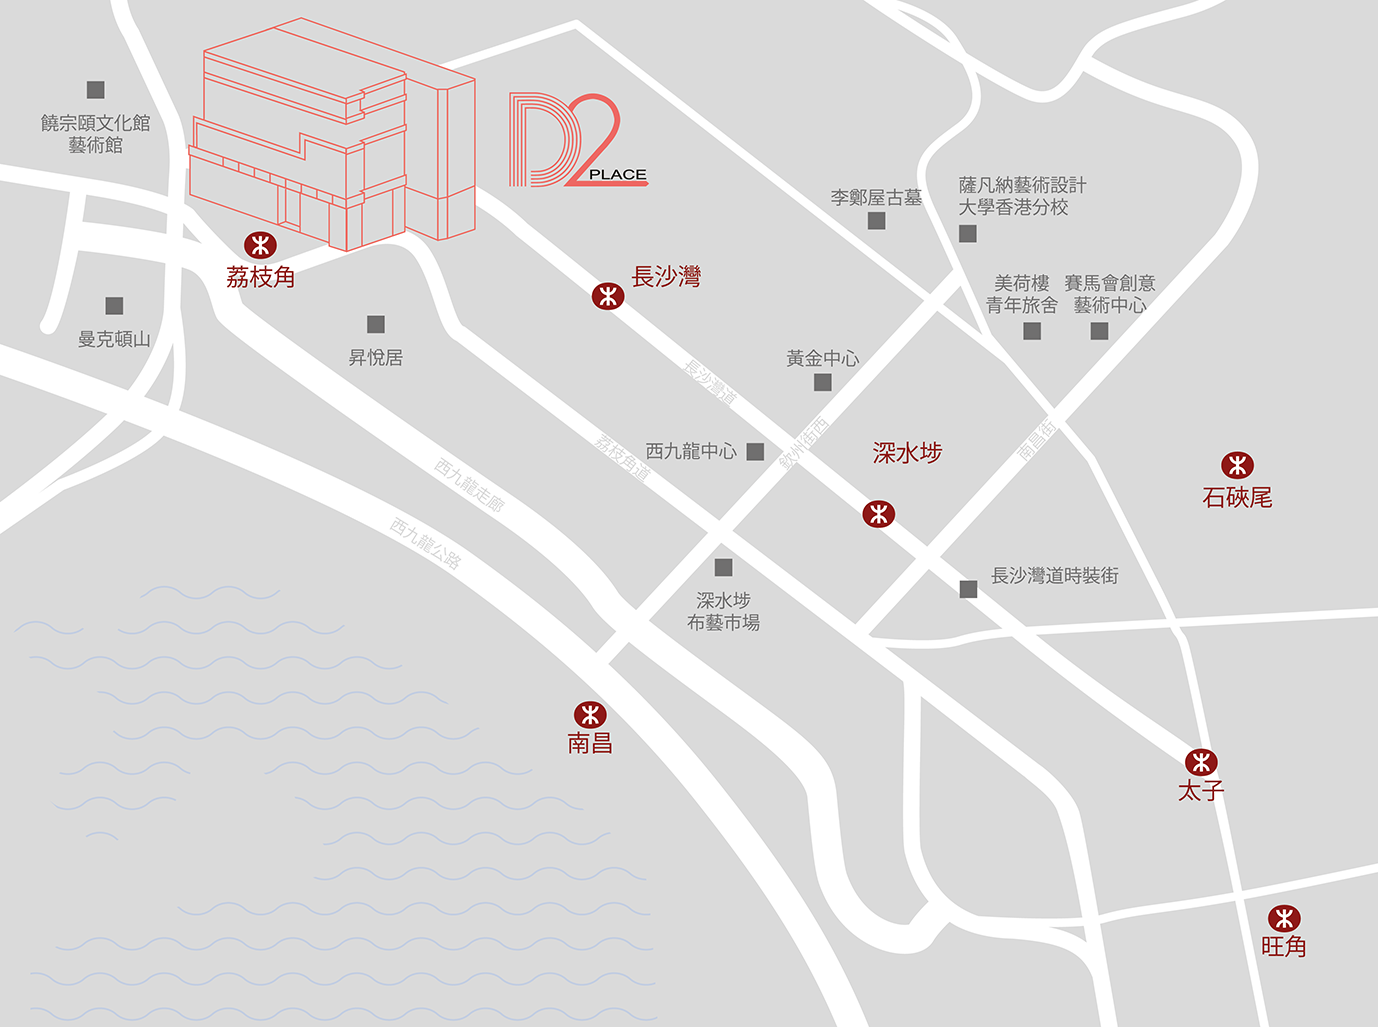 d2-place-neighbourhood-westkowloon-tc